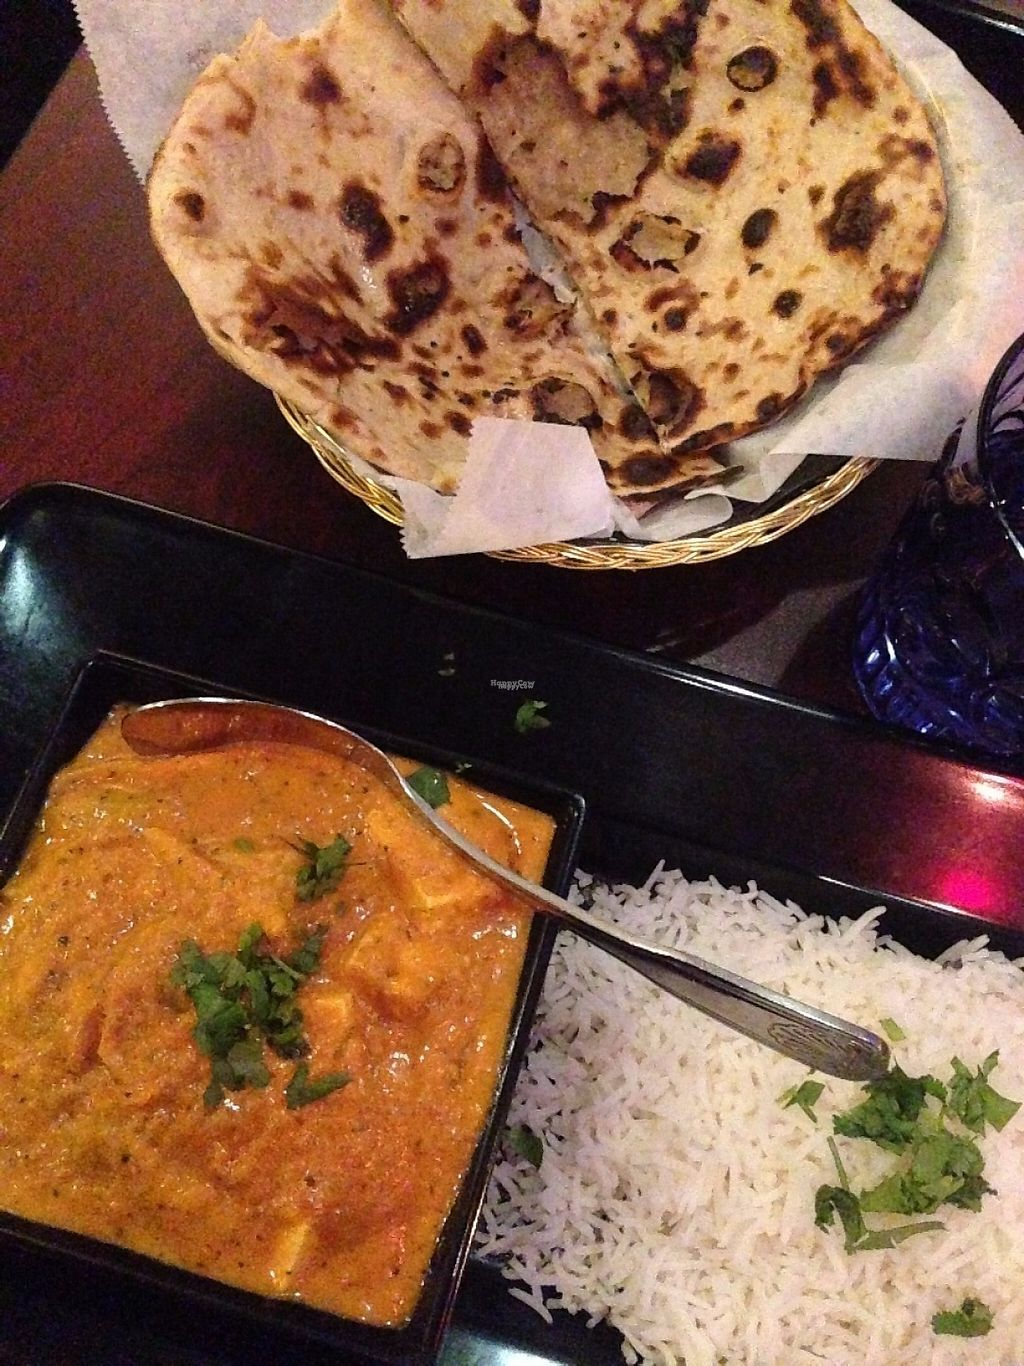 """Photo of Spice Lounge  by <a href=""""/members/profile/oleiah"""">oleiah</a> <br/>Vegan Jalfrezzi with tofu and roti bread <br/> March 3, 2017  - <a href='/contact/abuse/image/63604/232236'>Report</a>"""